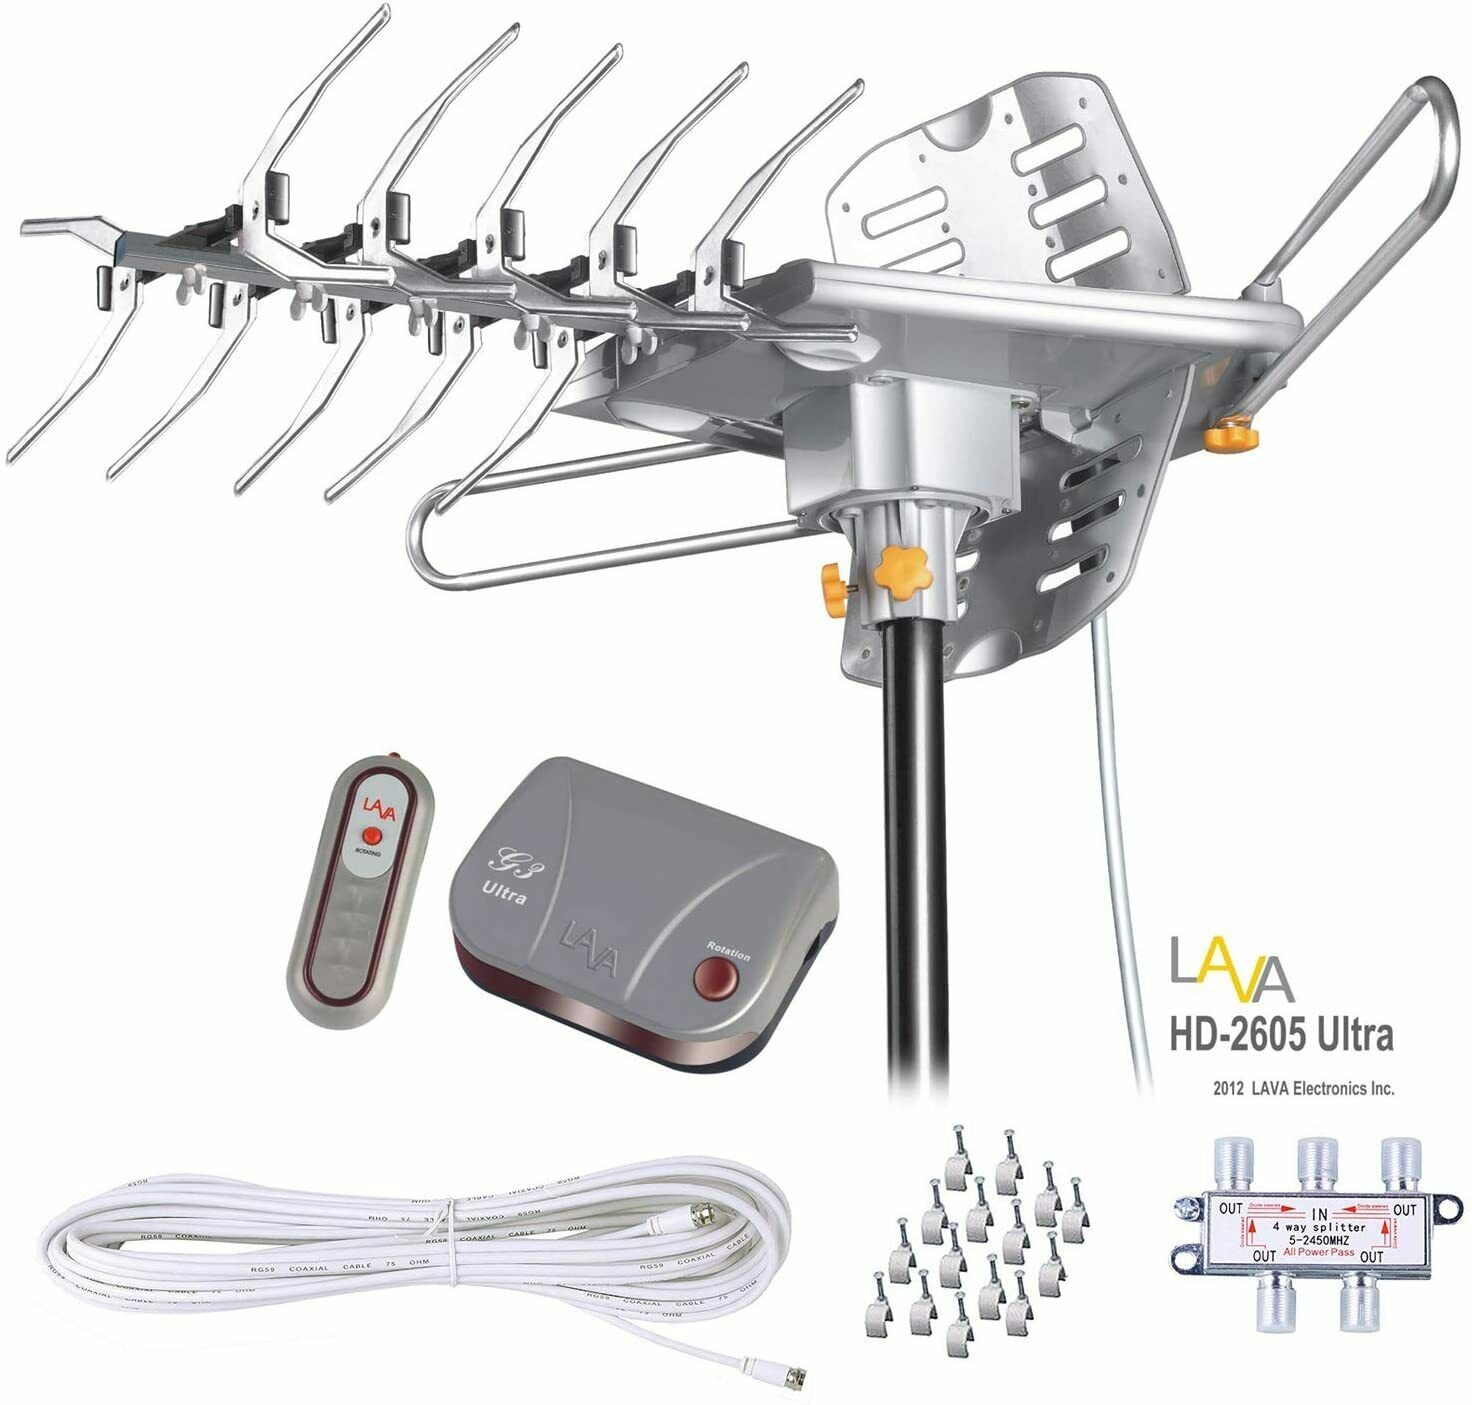 LAVA HD2605 Outdoor HD TV Antenna Remote Controlled Rotation 4K TV with Kit. Available Now for 74.95